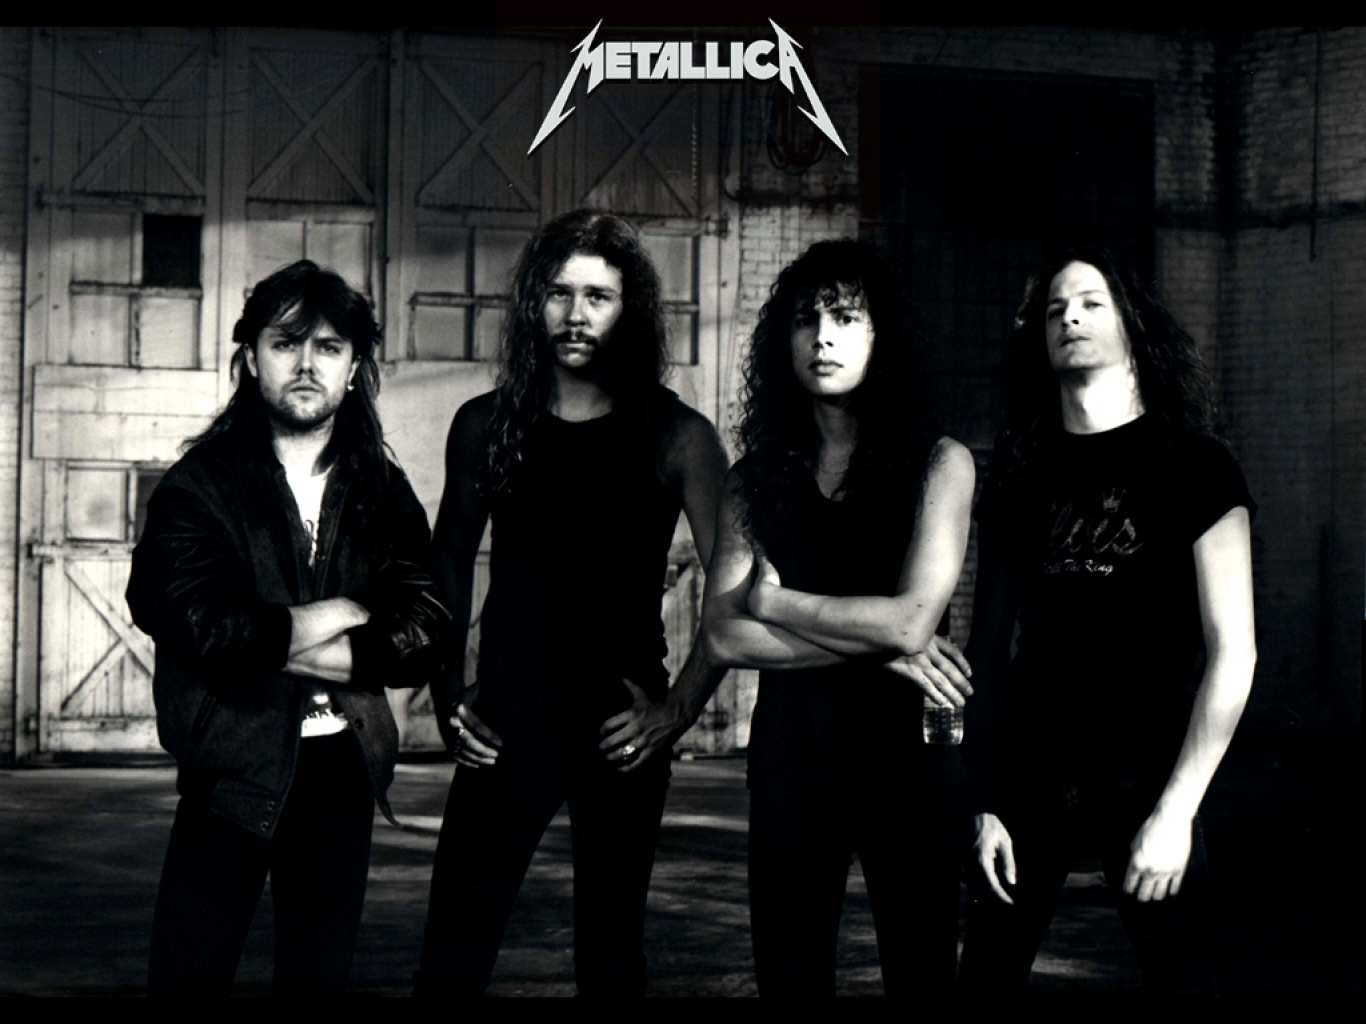 Metallica wallpaper, metallica band pictures,